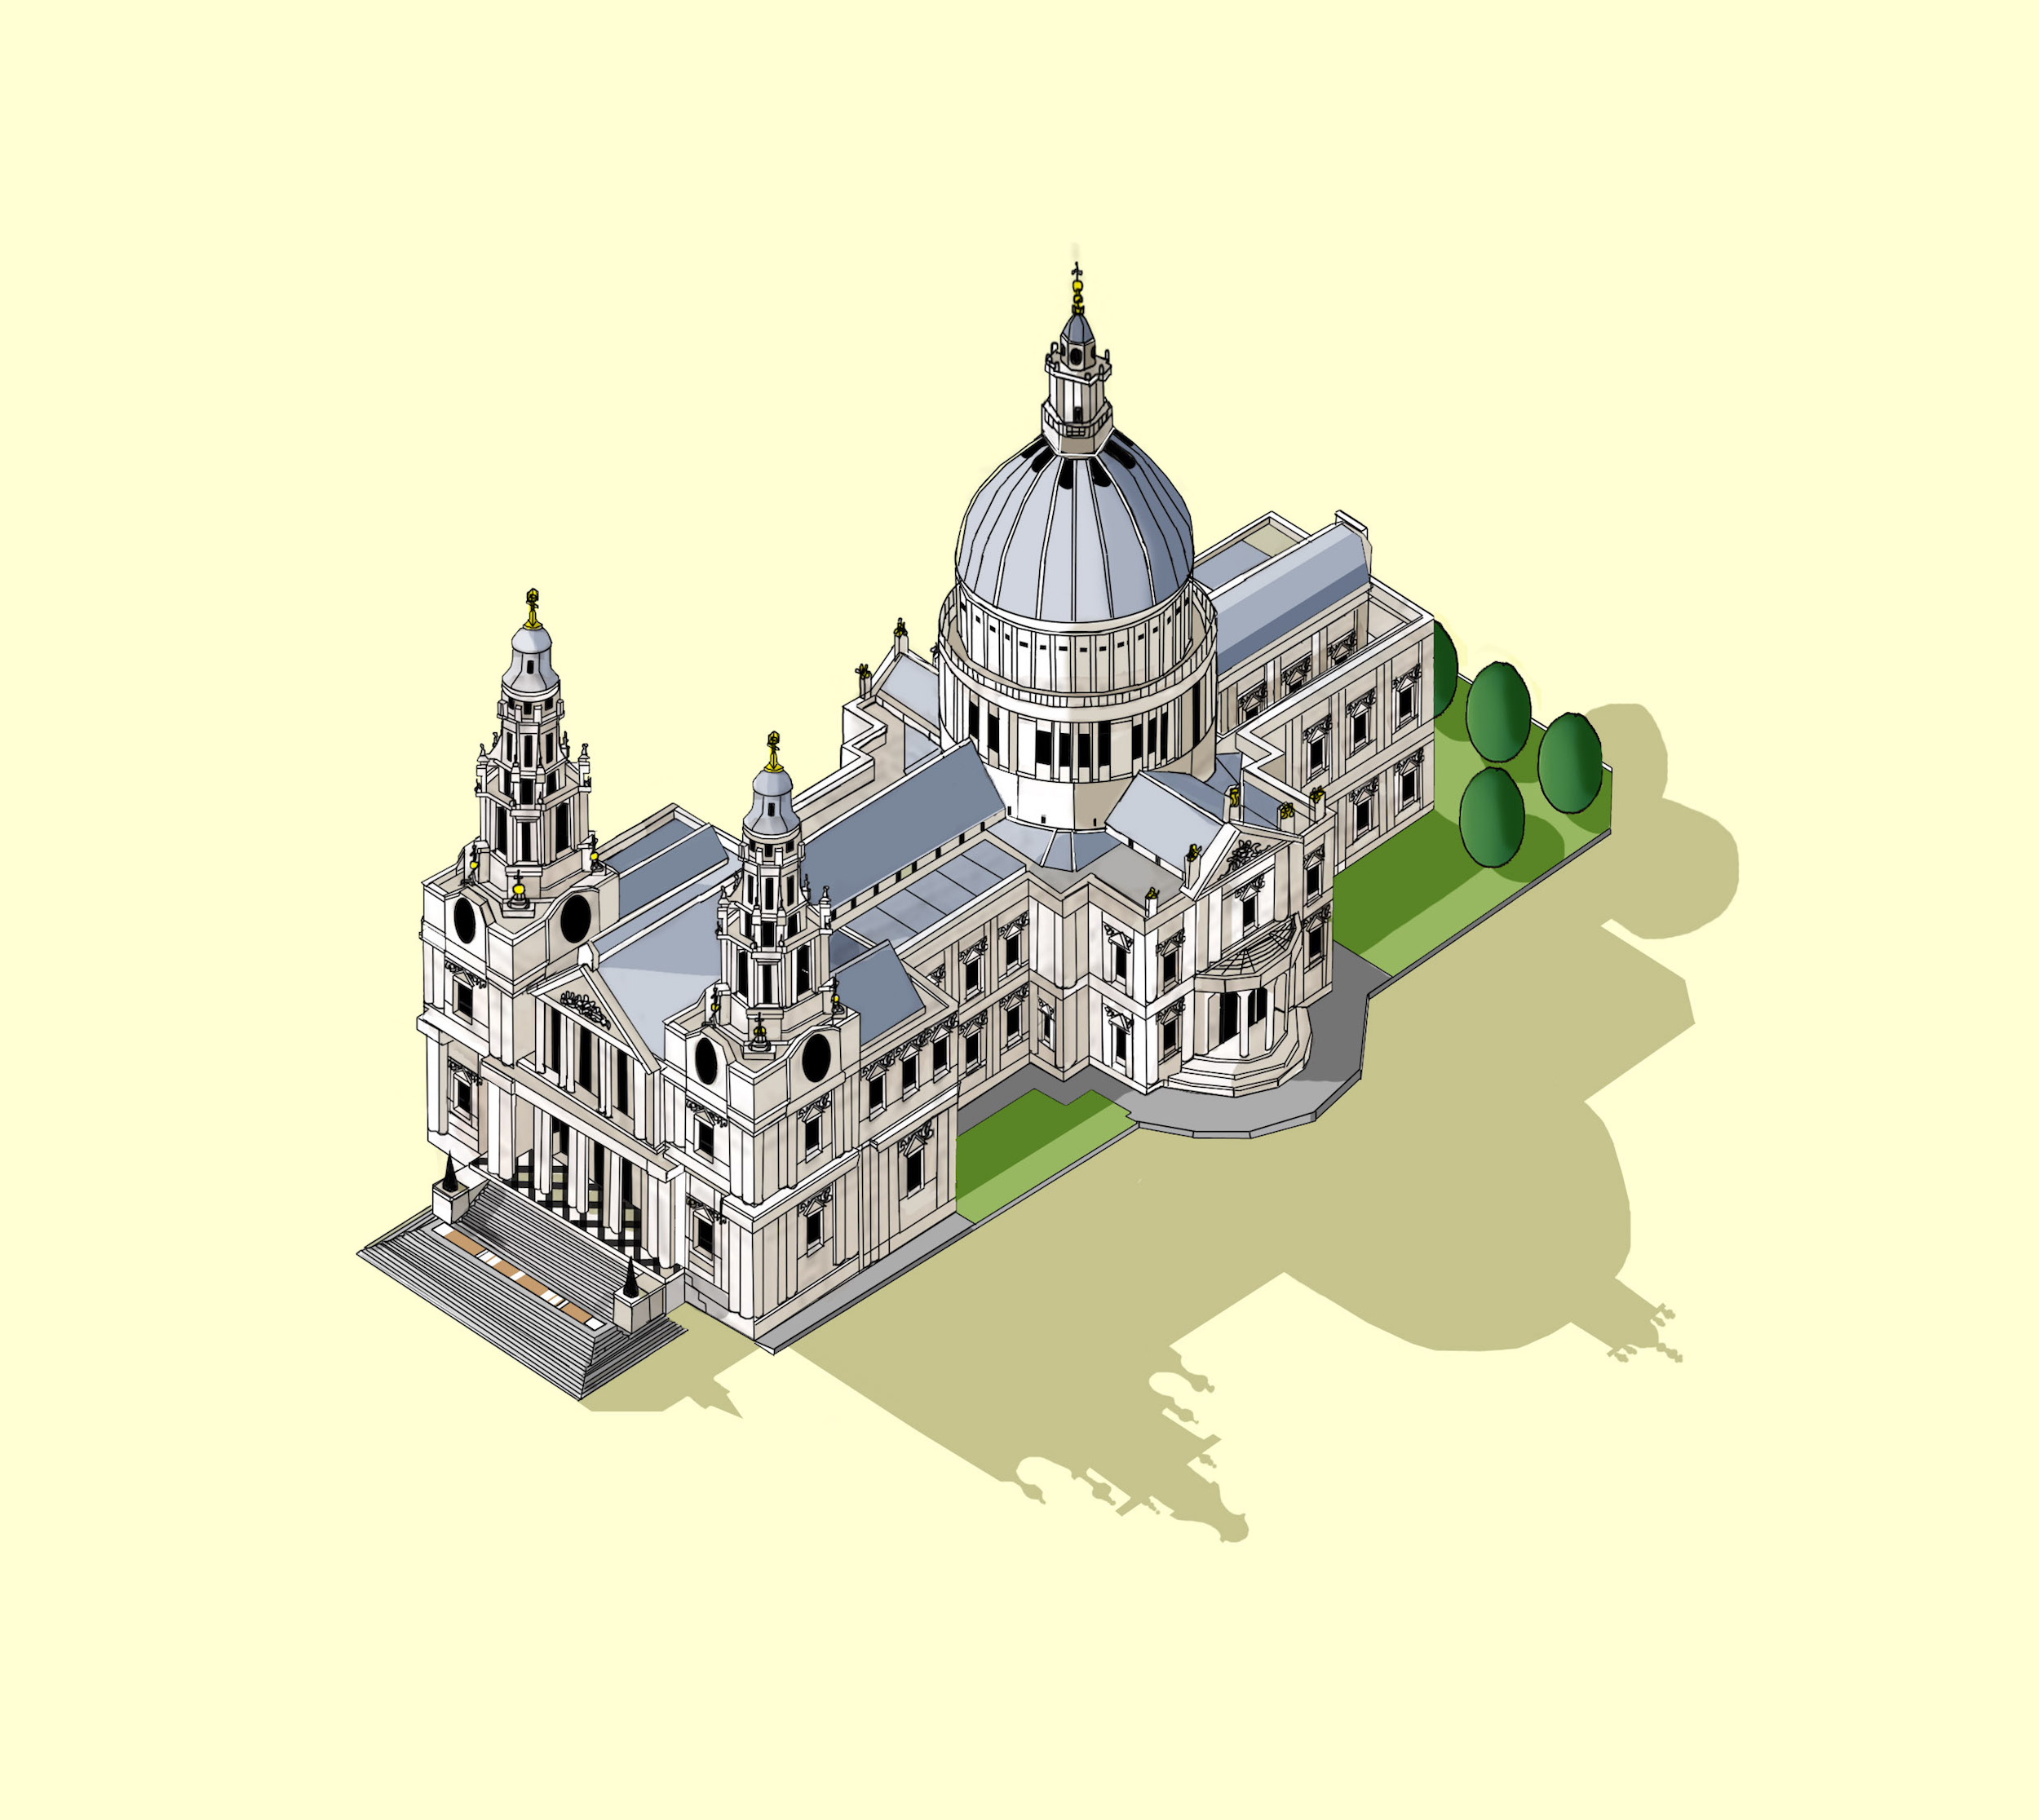 St Paul's Cathedral Illustration by Katherine Baxter